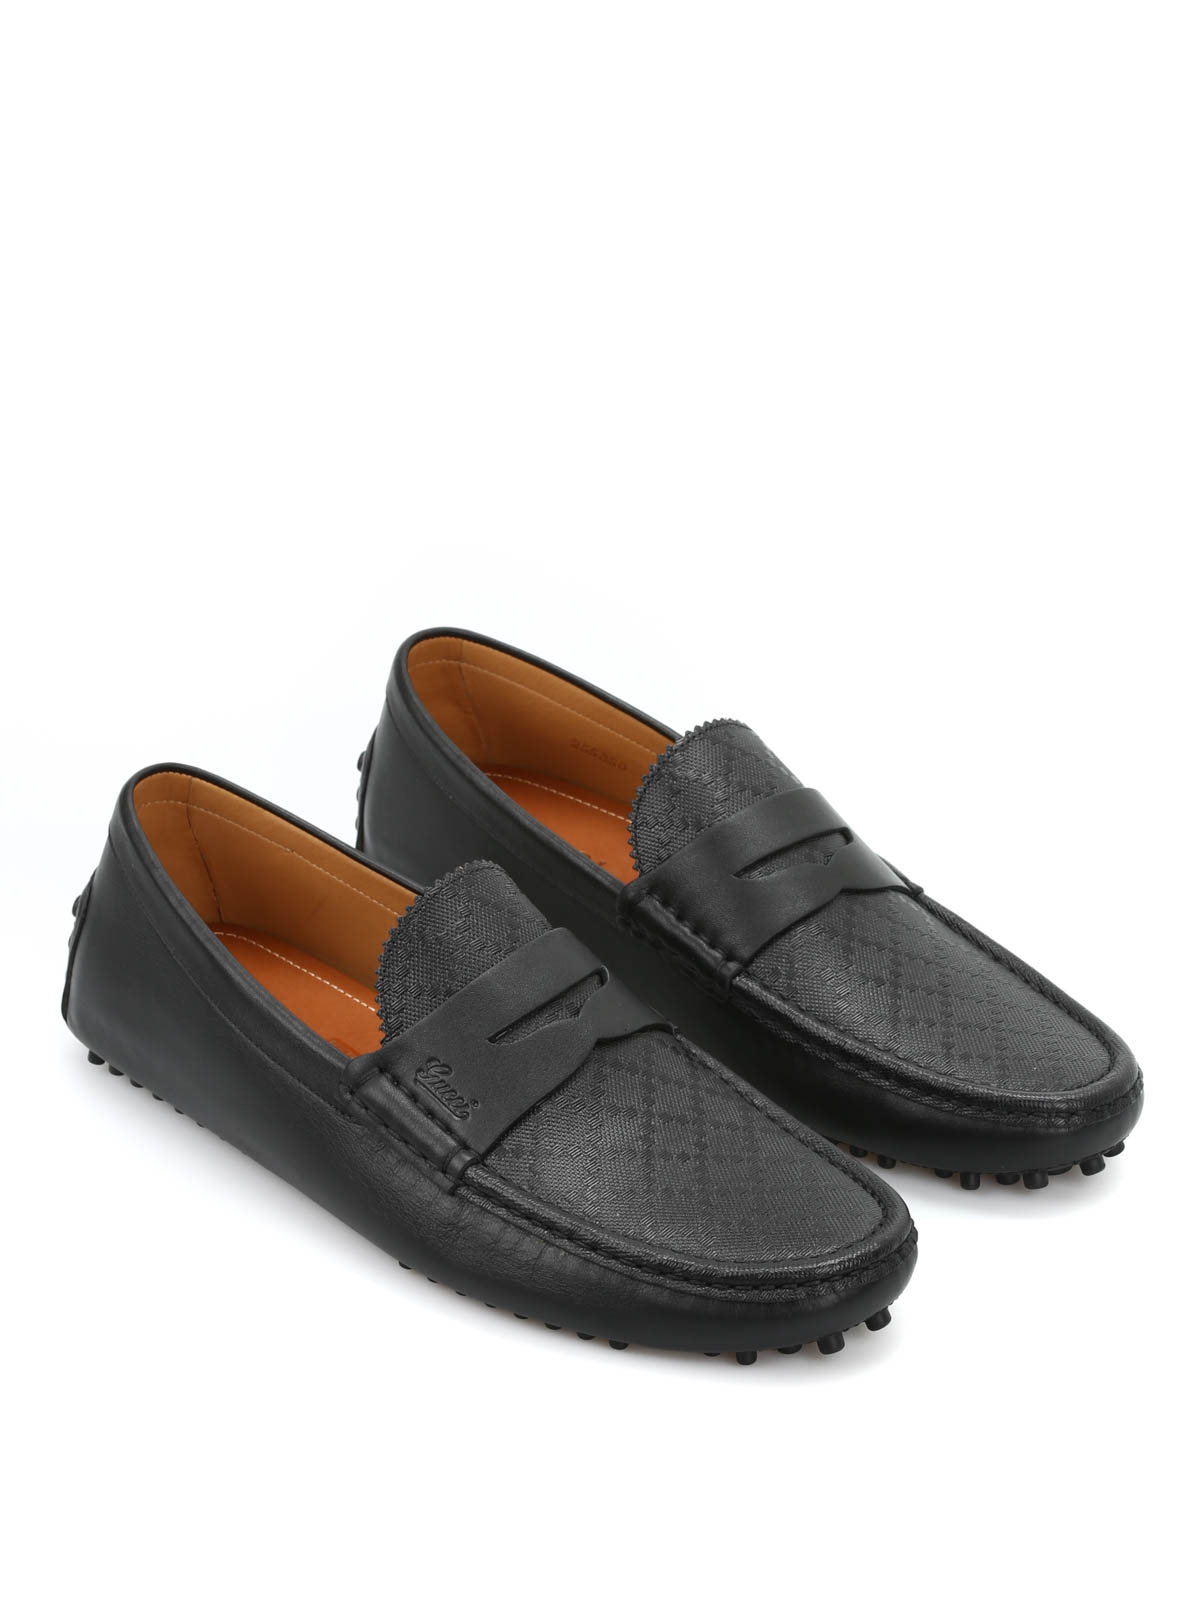 Gucci Diamante Leather Driver Loafers Loafers